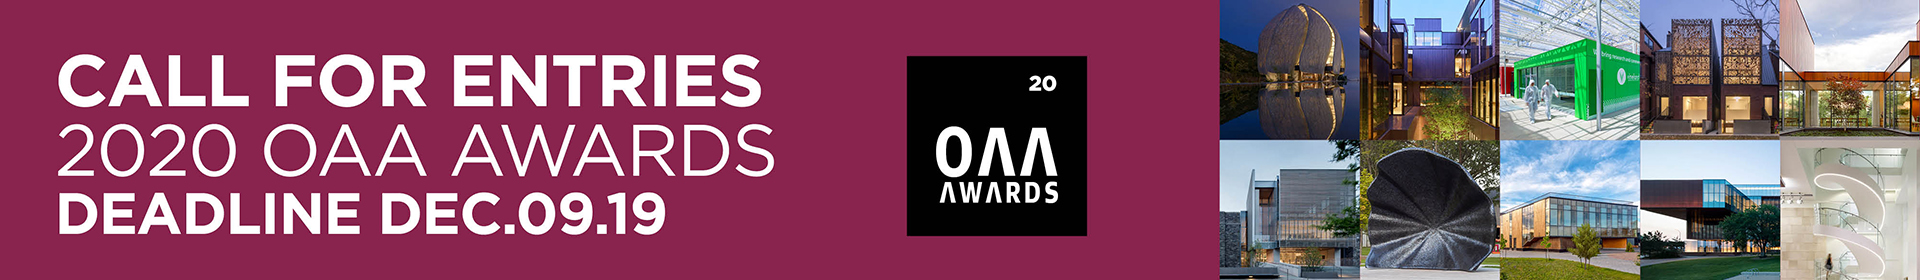 2020 OAA Awards Event Banner